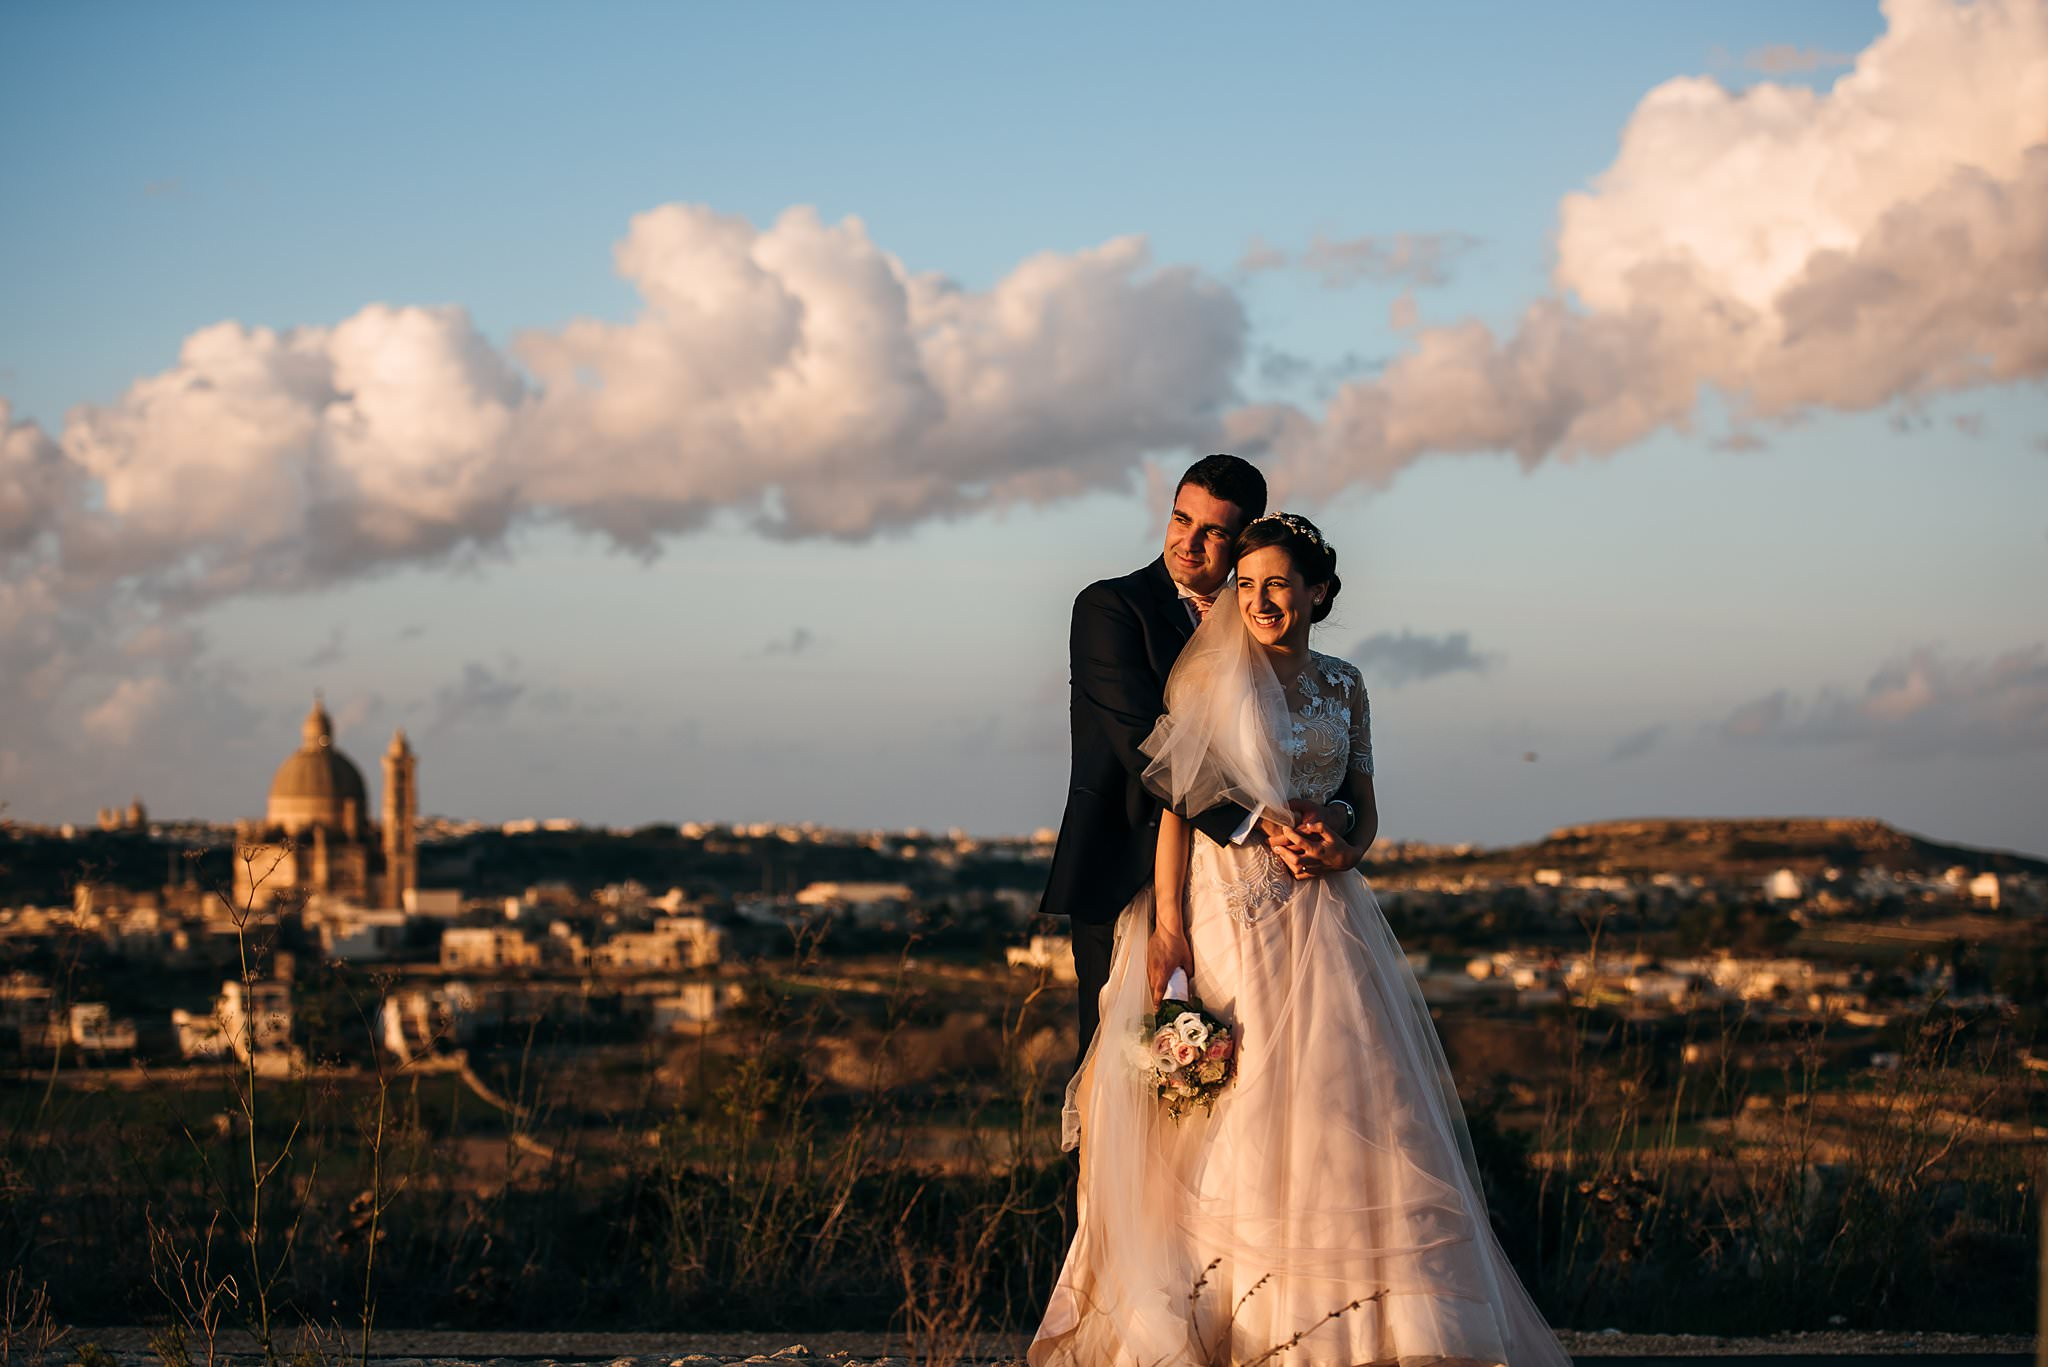 bride and groom portrait amongst the clouds- photo by Shane P Watts Photography